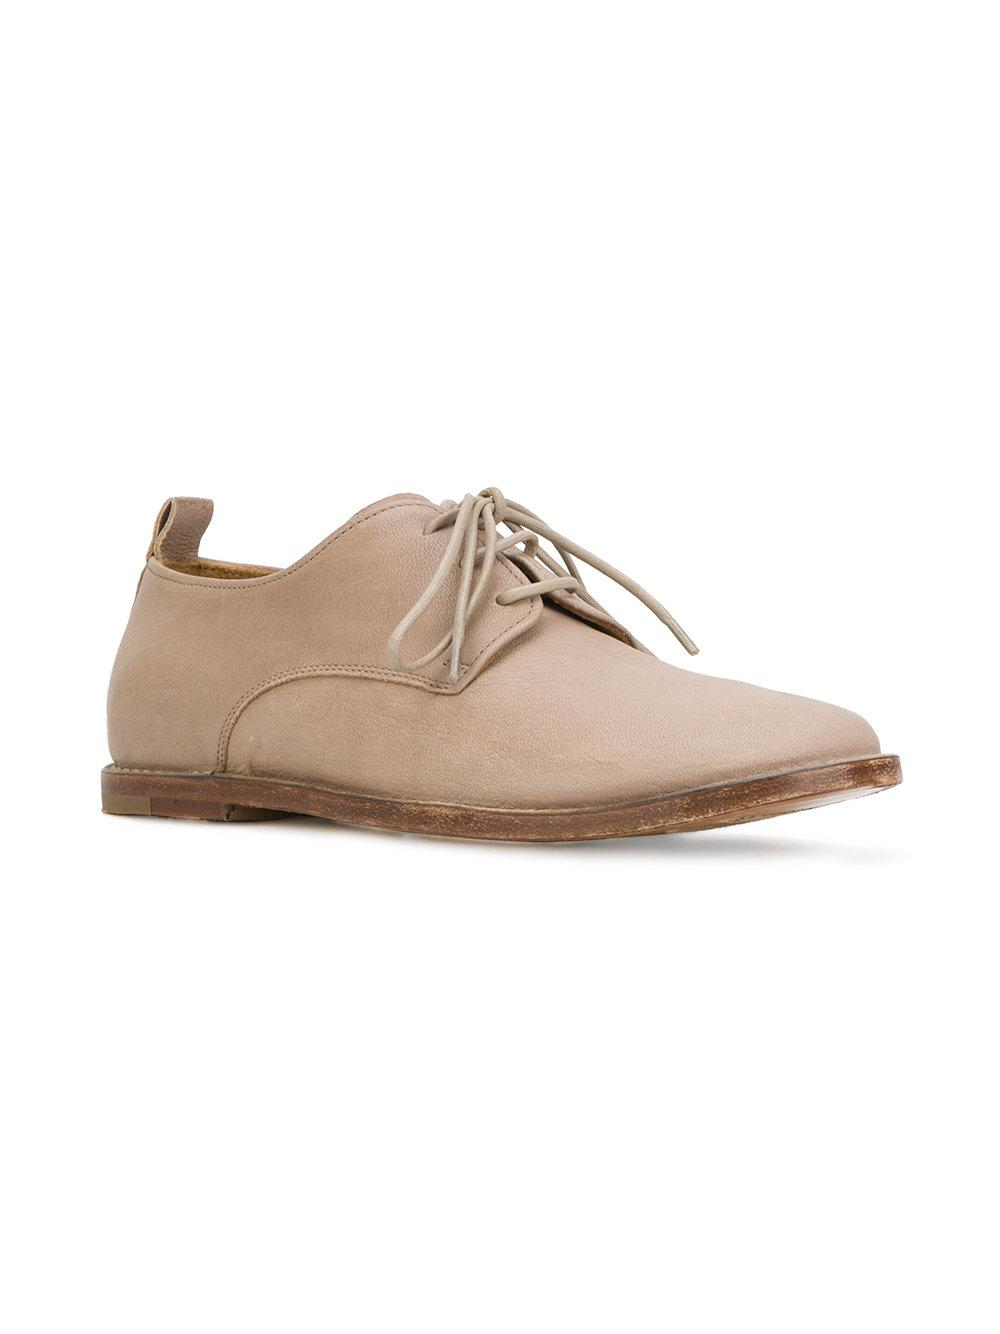 Ines derby shoes - Nude & Neutrals Officine Creative nOwylb